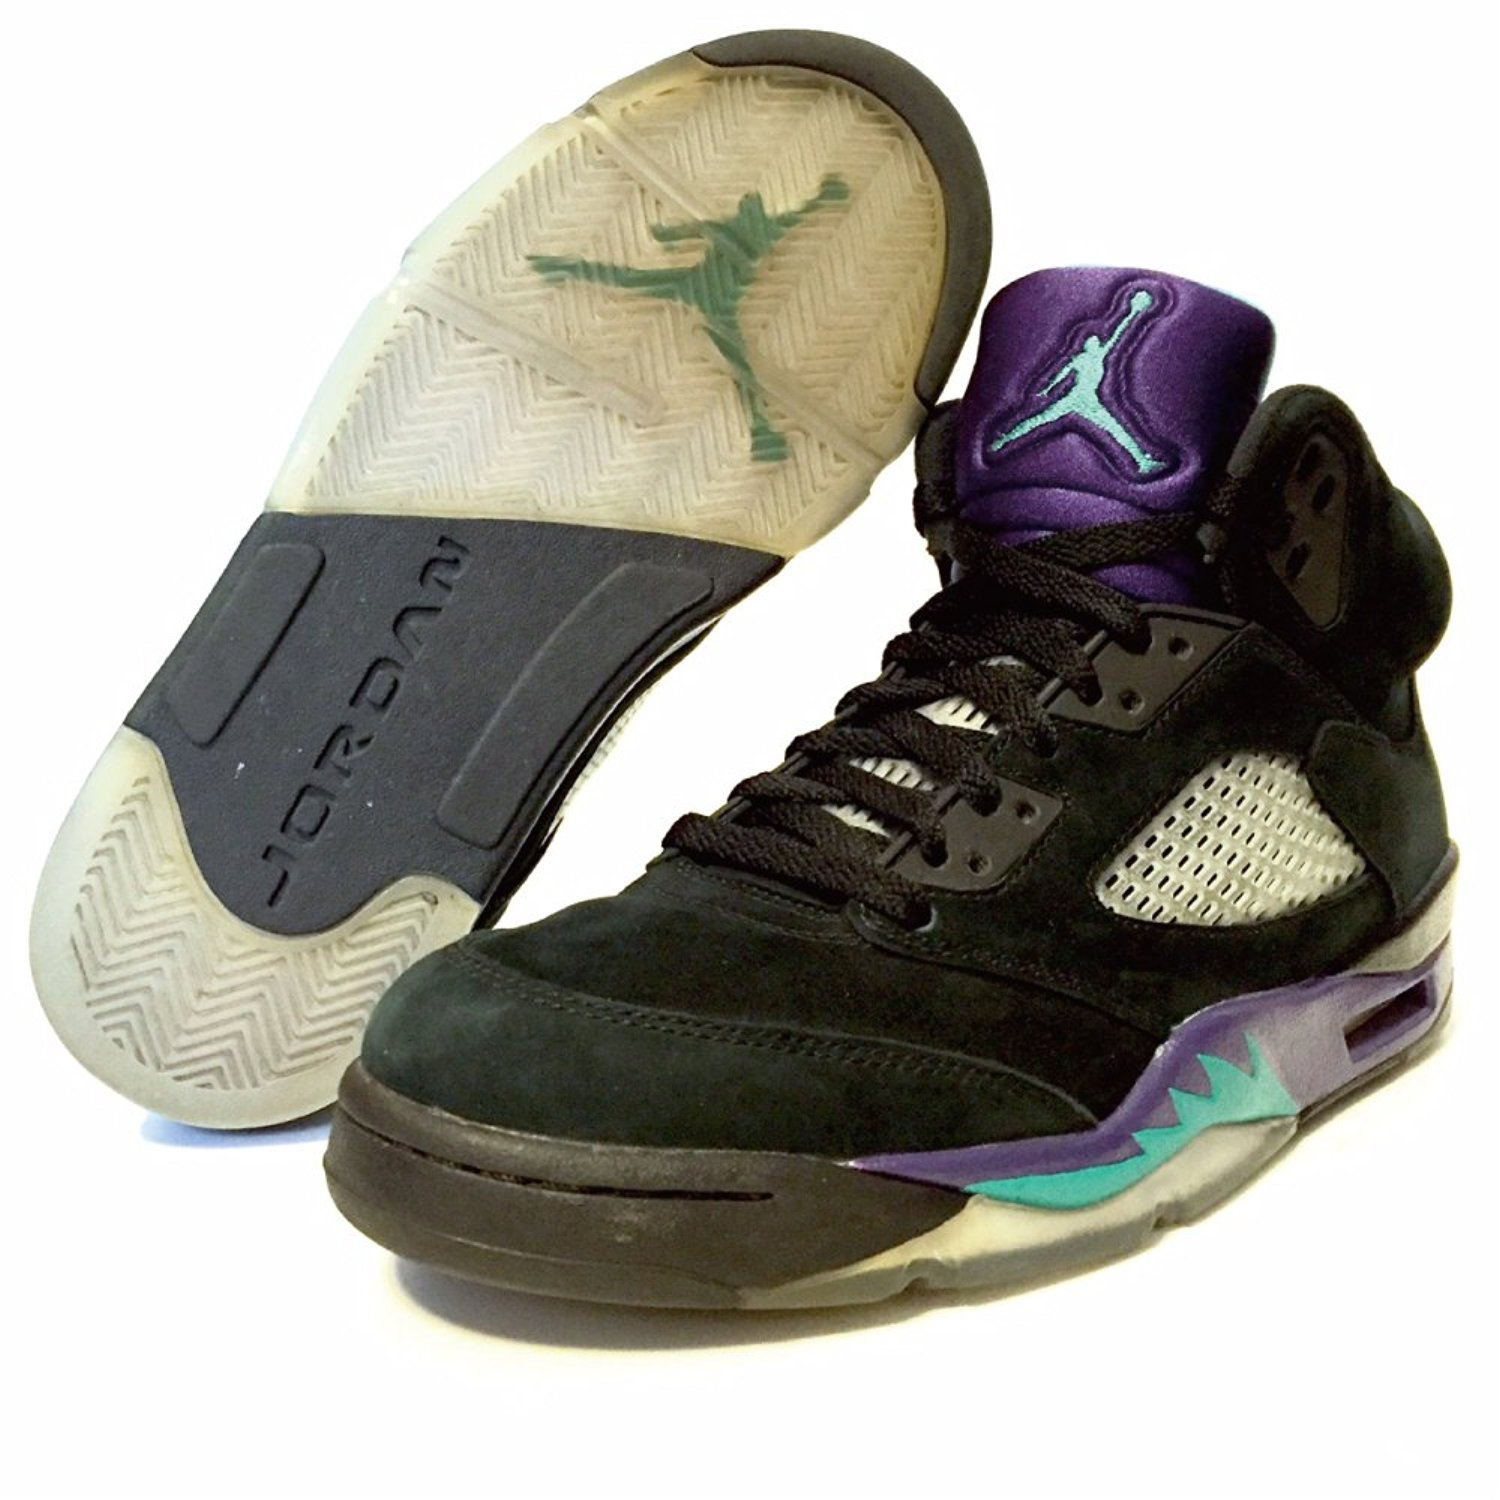 "NIKE AIR JORDAN 5 RETRO MENS 136027-007 ""GRAPES"" (8.5, BLACK / NEW EMERALD - GRAPE ICE)"